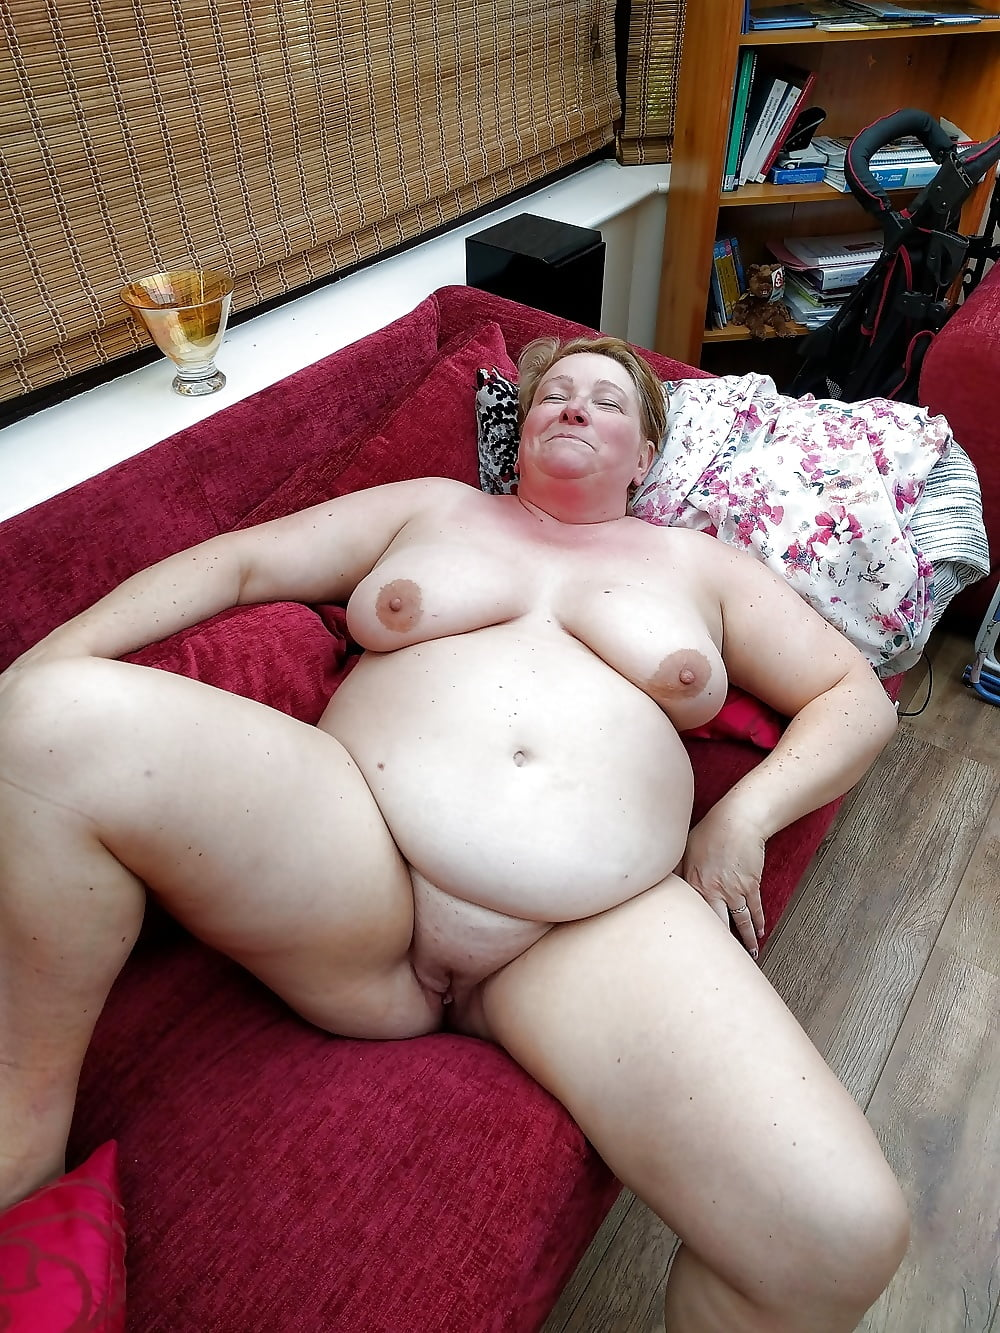 Fat and ugly nude women